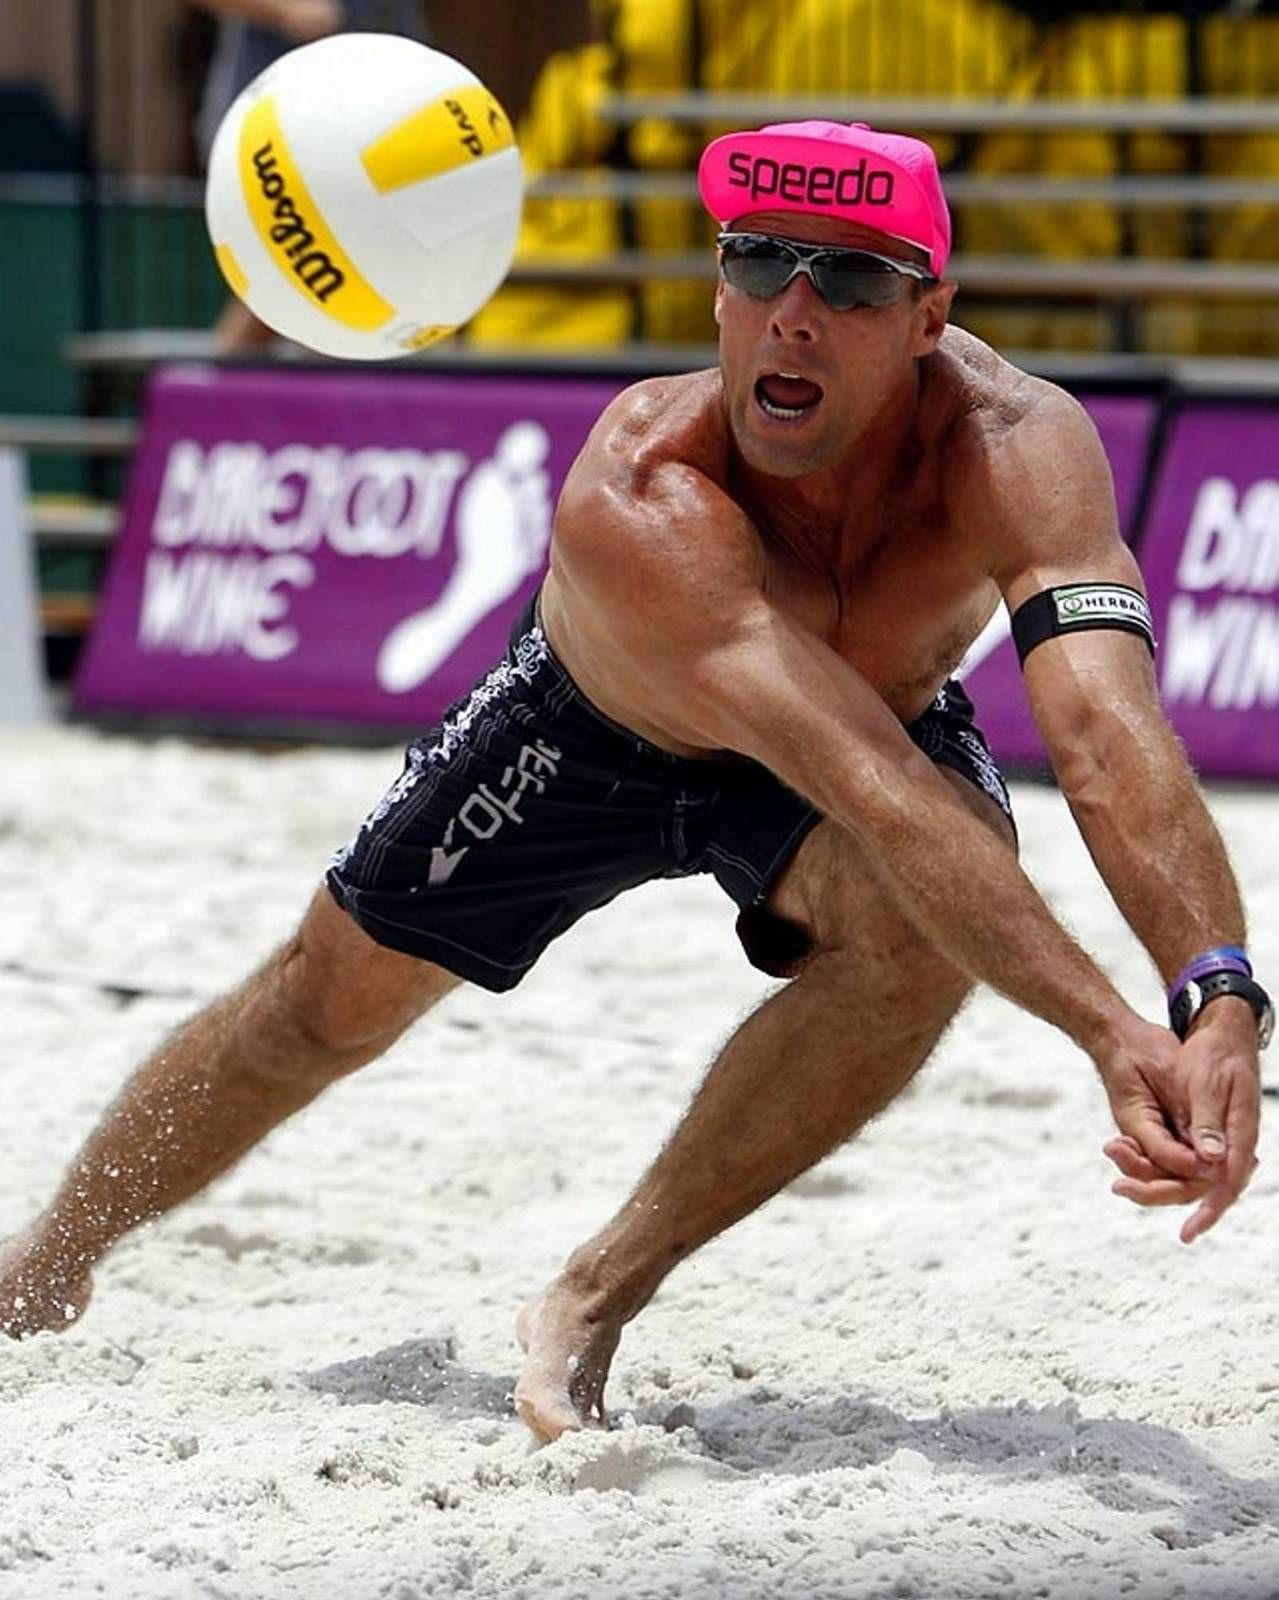 Karch Kiraly Pro Beach Volleyball Hq 8x10 Color Photo 3 Beach Volleyball Volleyball Volleyball Outfits